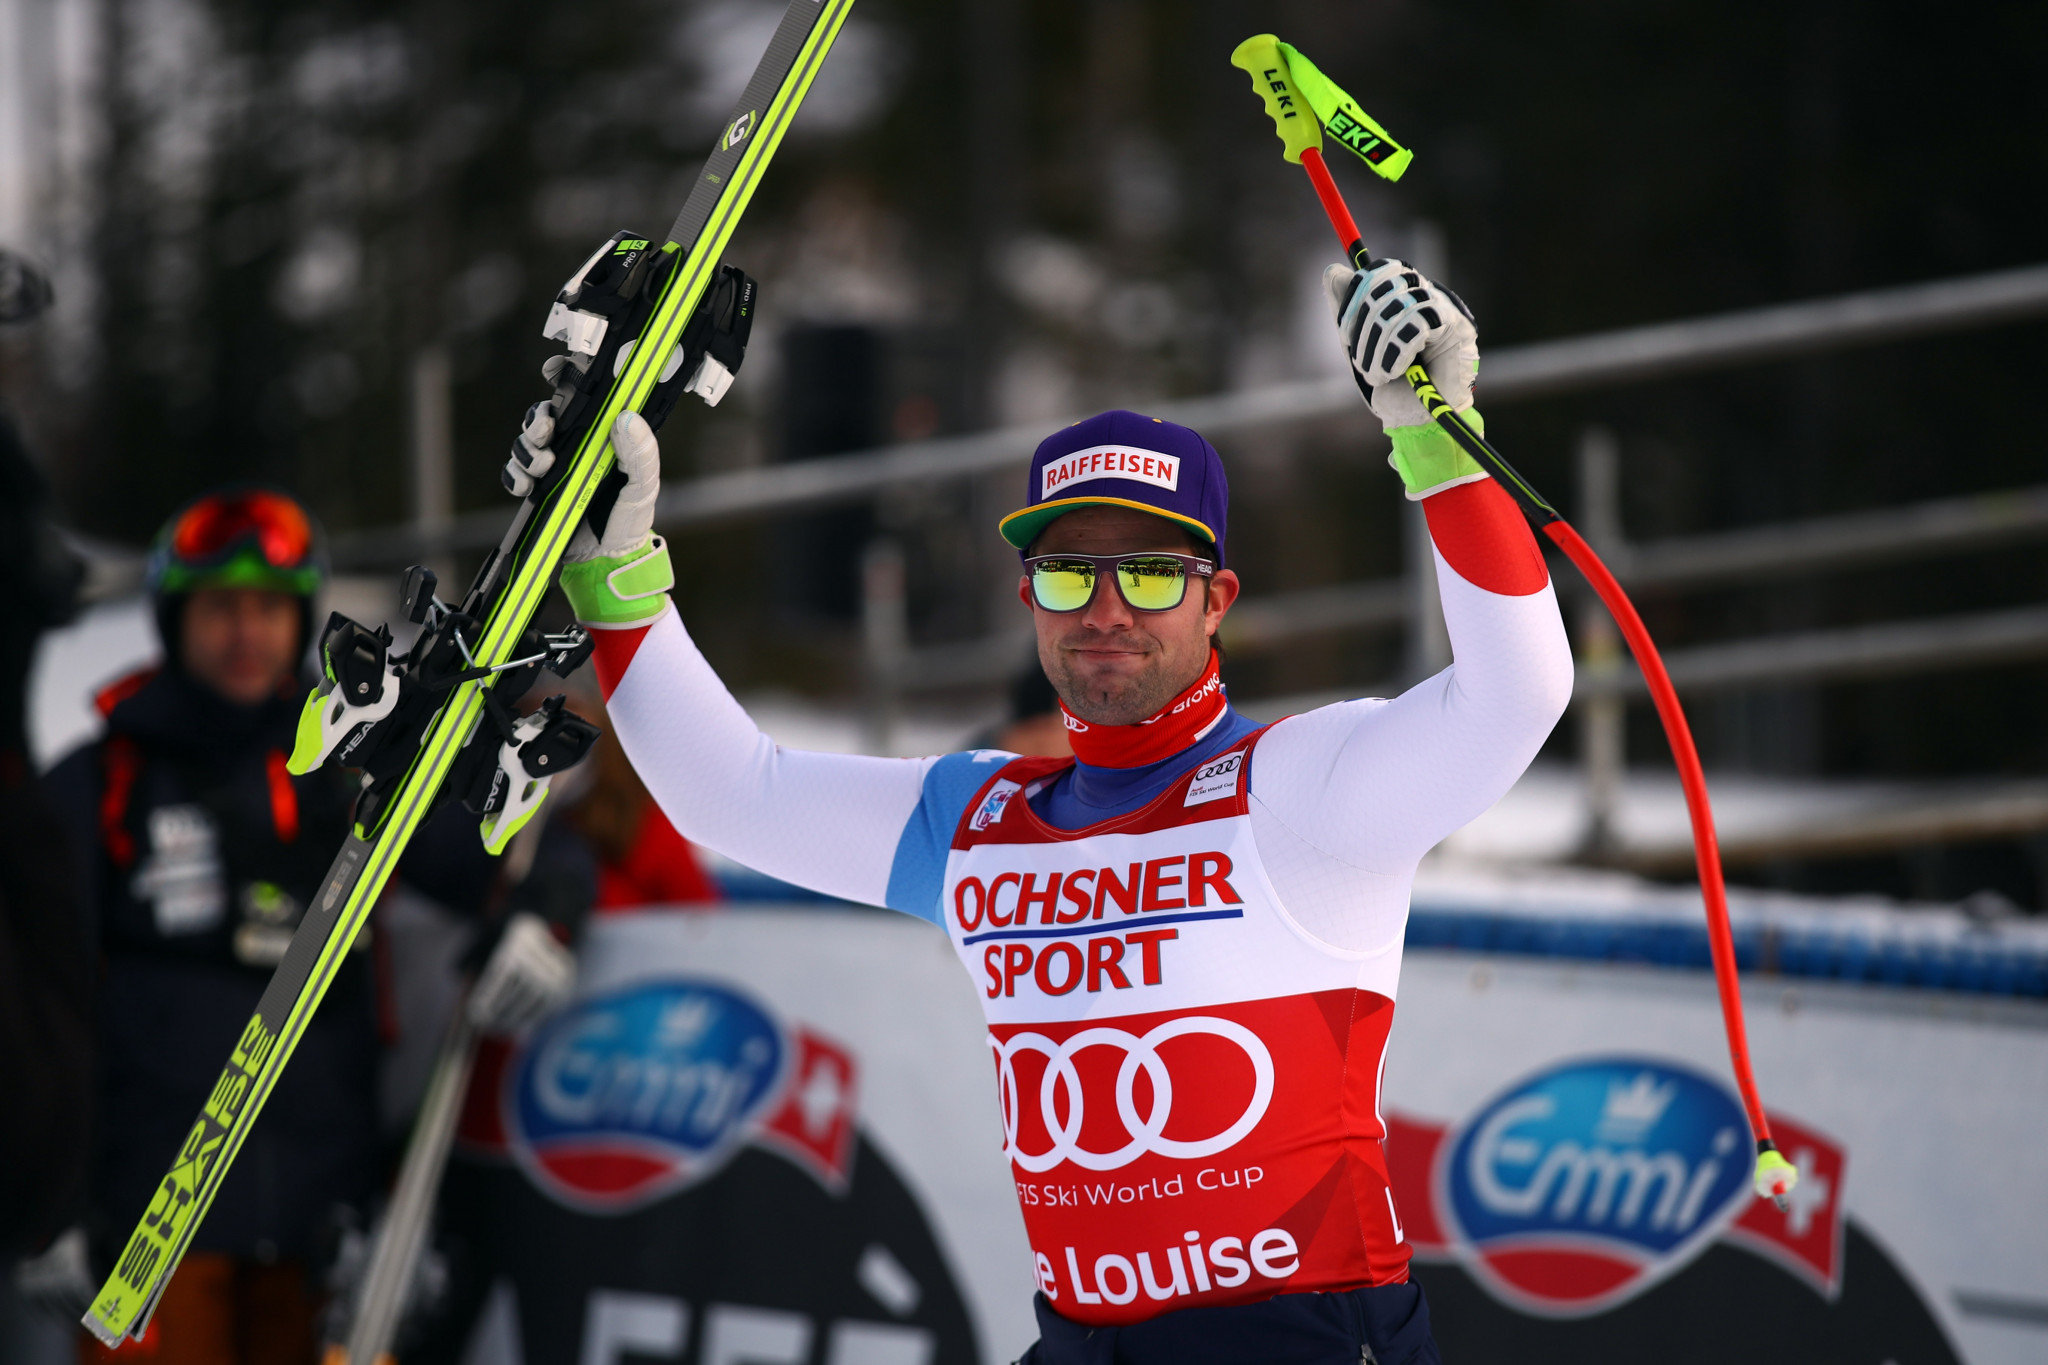 World champion Feuz wins downhill event at FIS Alpine Skiing World Cup in Lake Louise